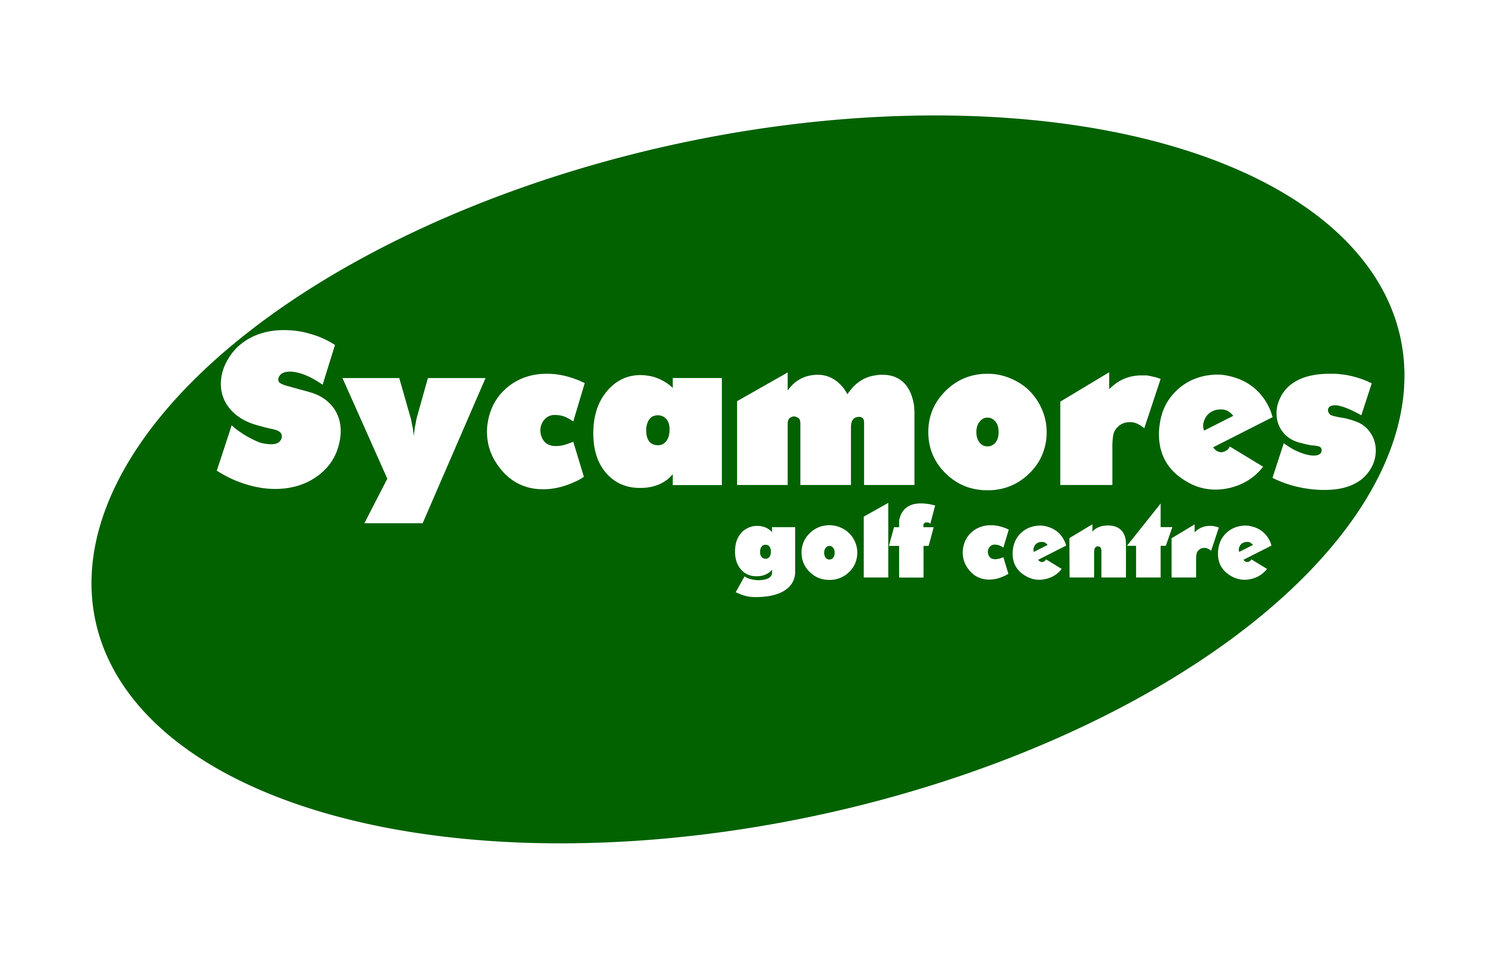 Sycamores Golf Centre